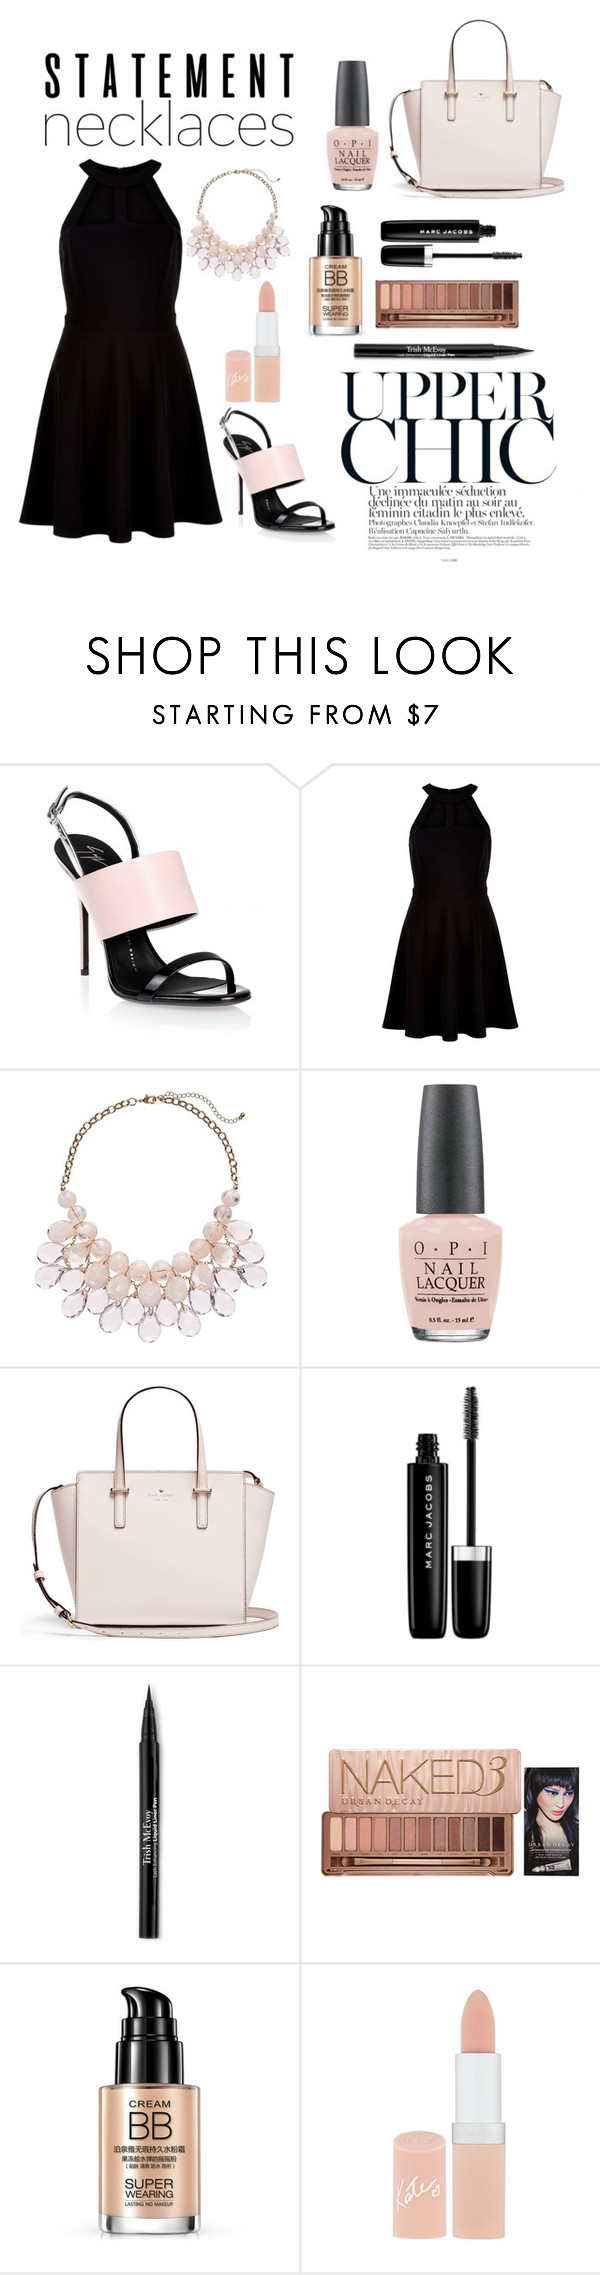 """Statement Necklace"" by fashion4infinity22 ❤ liked on Polyvore featuring Giuseppe Zanotti, New Look, OPI, Marc Jacobs, Trish McEvoy, Urban Decay, Rimmel and statementnecklaces"